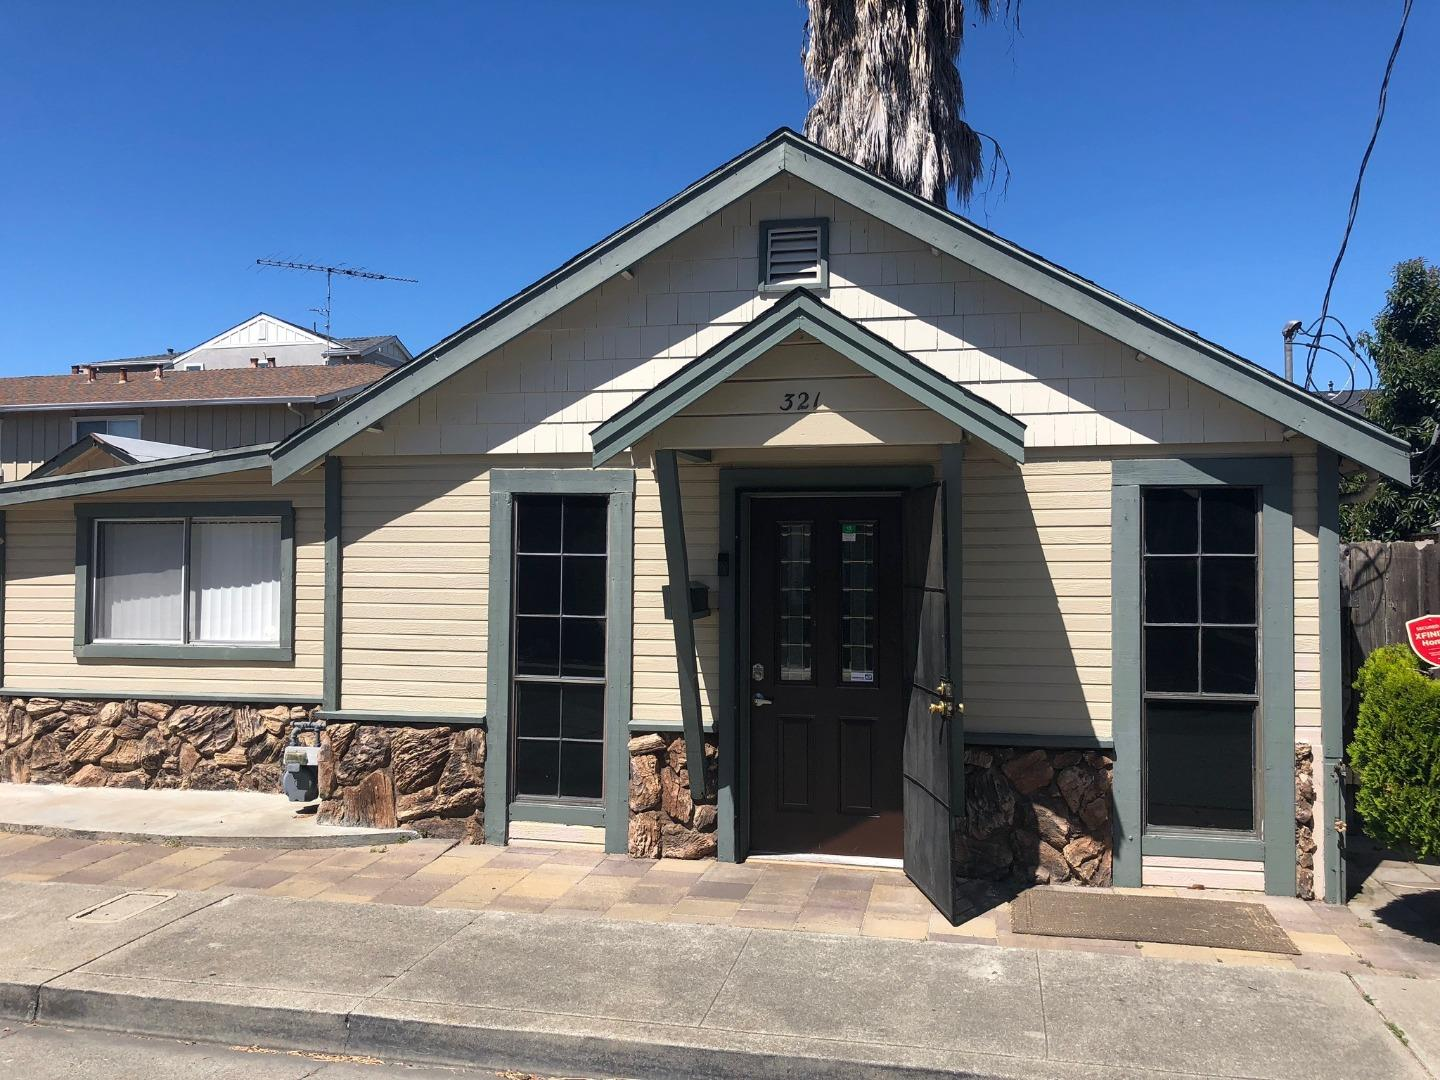 Single Family Home Located 5 blocks from Downtown Campbell Restaurants & Shopping and one block from Light Rail Station. Property Leased until July 2020. Great investment property or plan your new build while collecting rent.